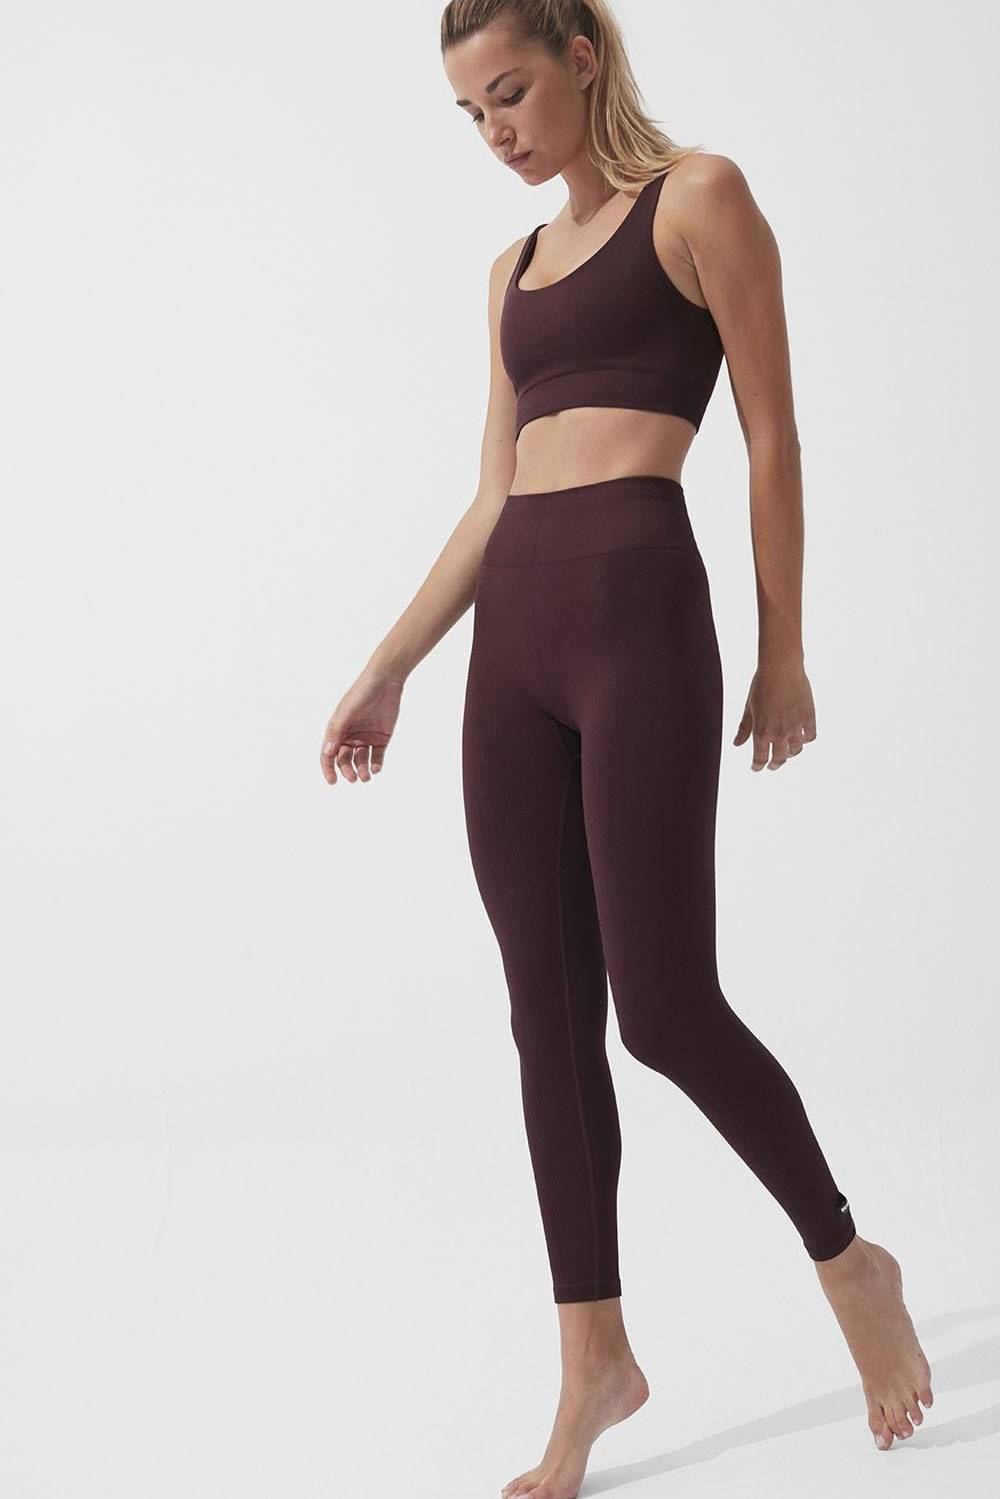 ecoalf affordable sustainable yoga leggings